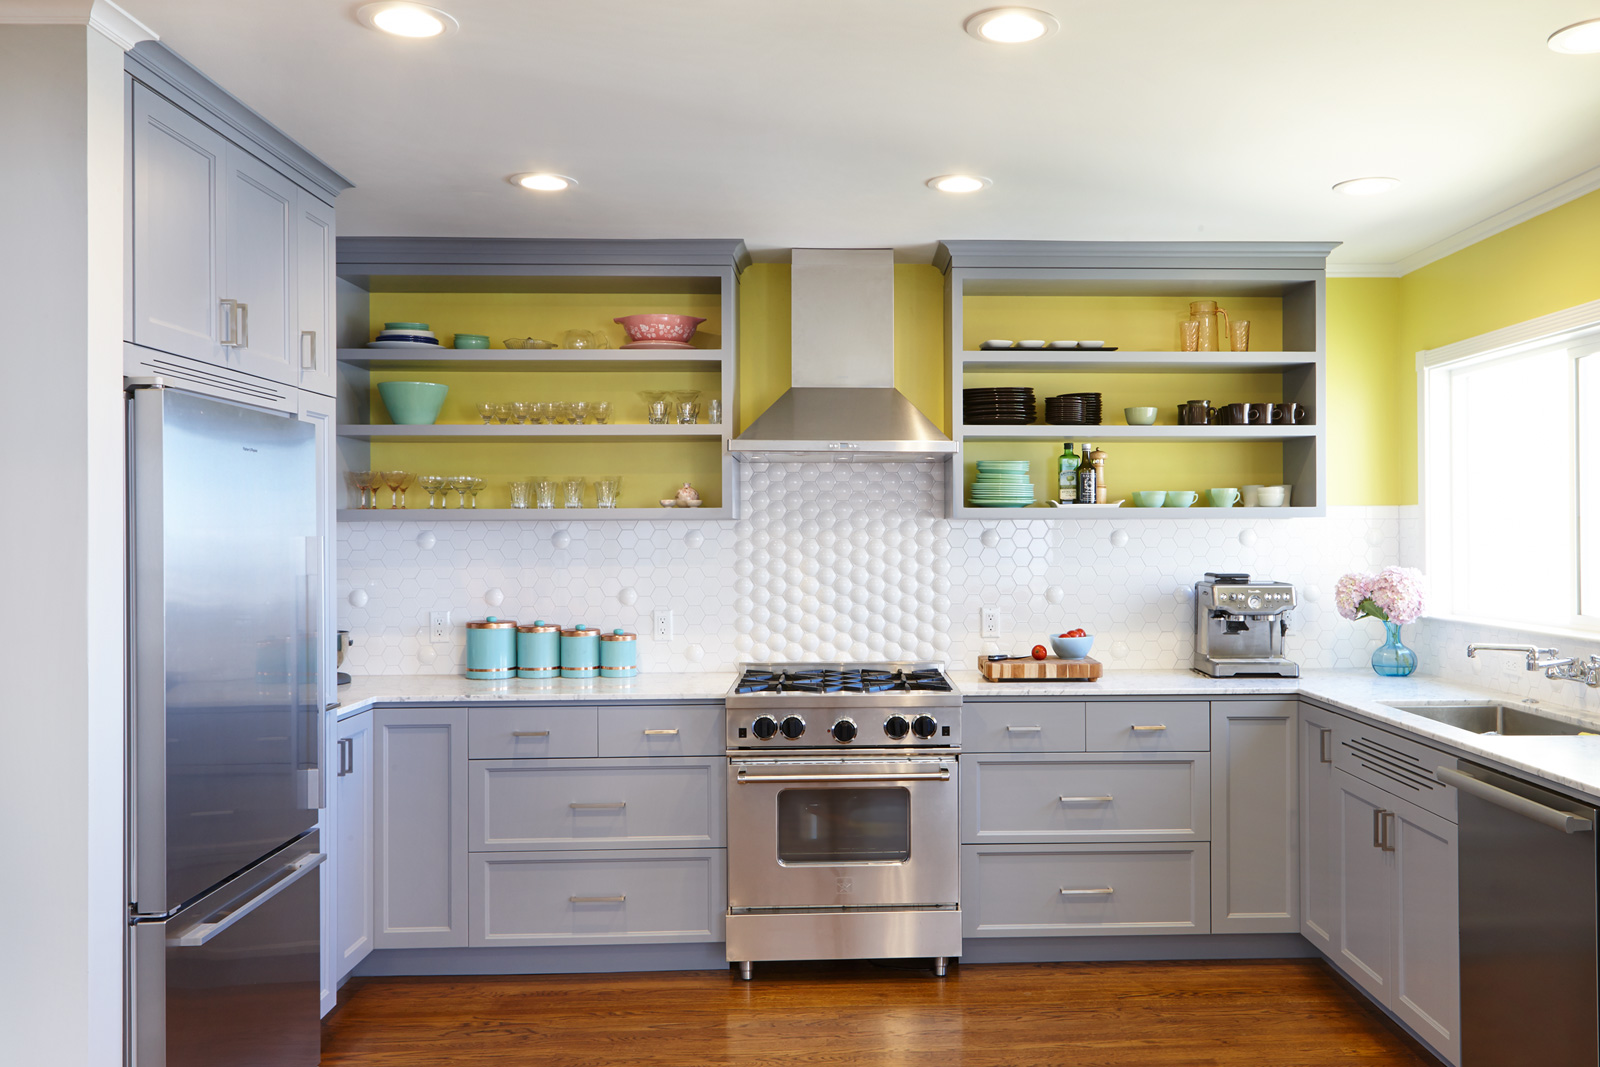 Best Paint For Kitchen Cabinets Paint For Kitchens - What kind of paint to use on kitchen cabinets